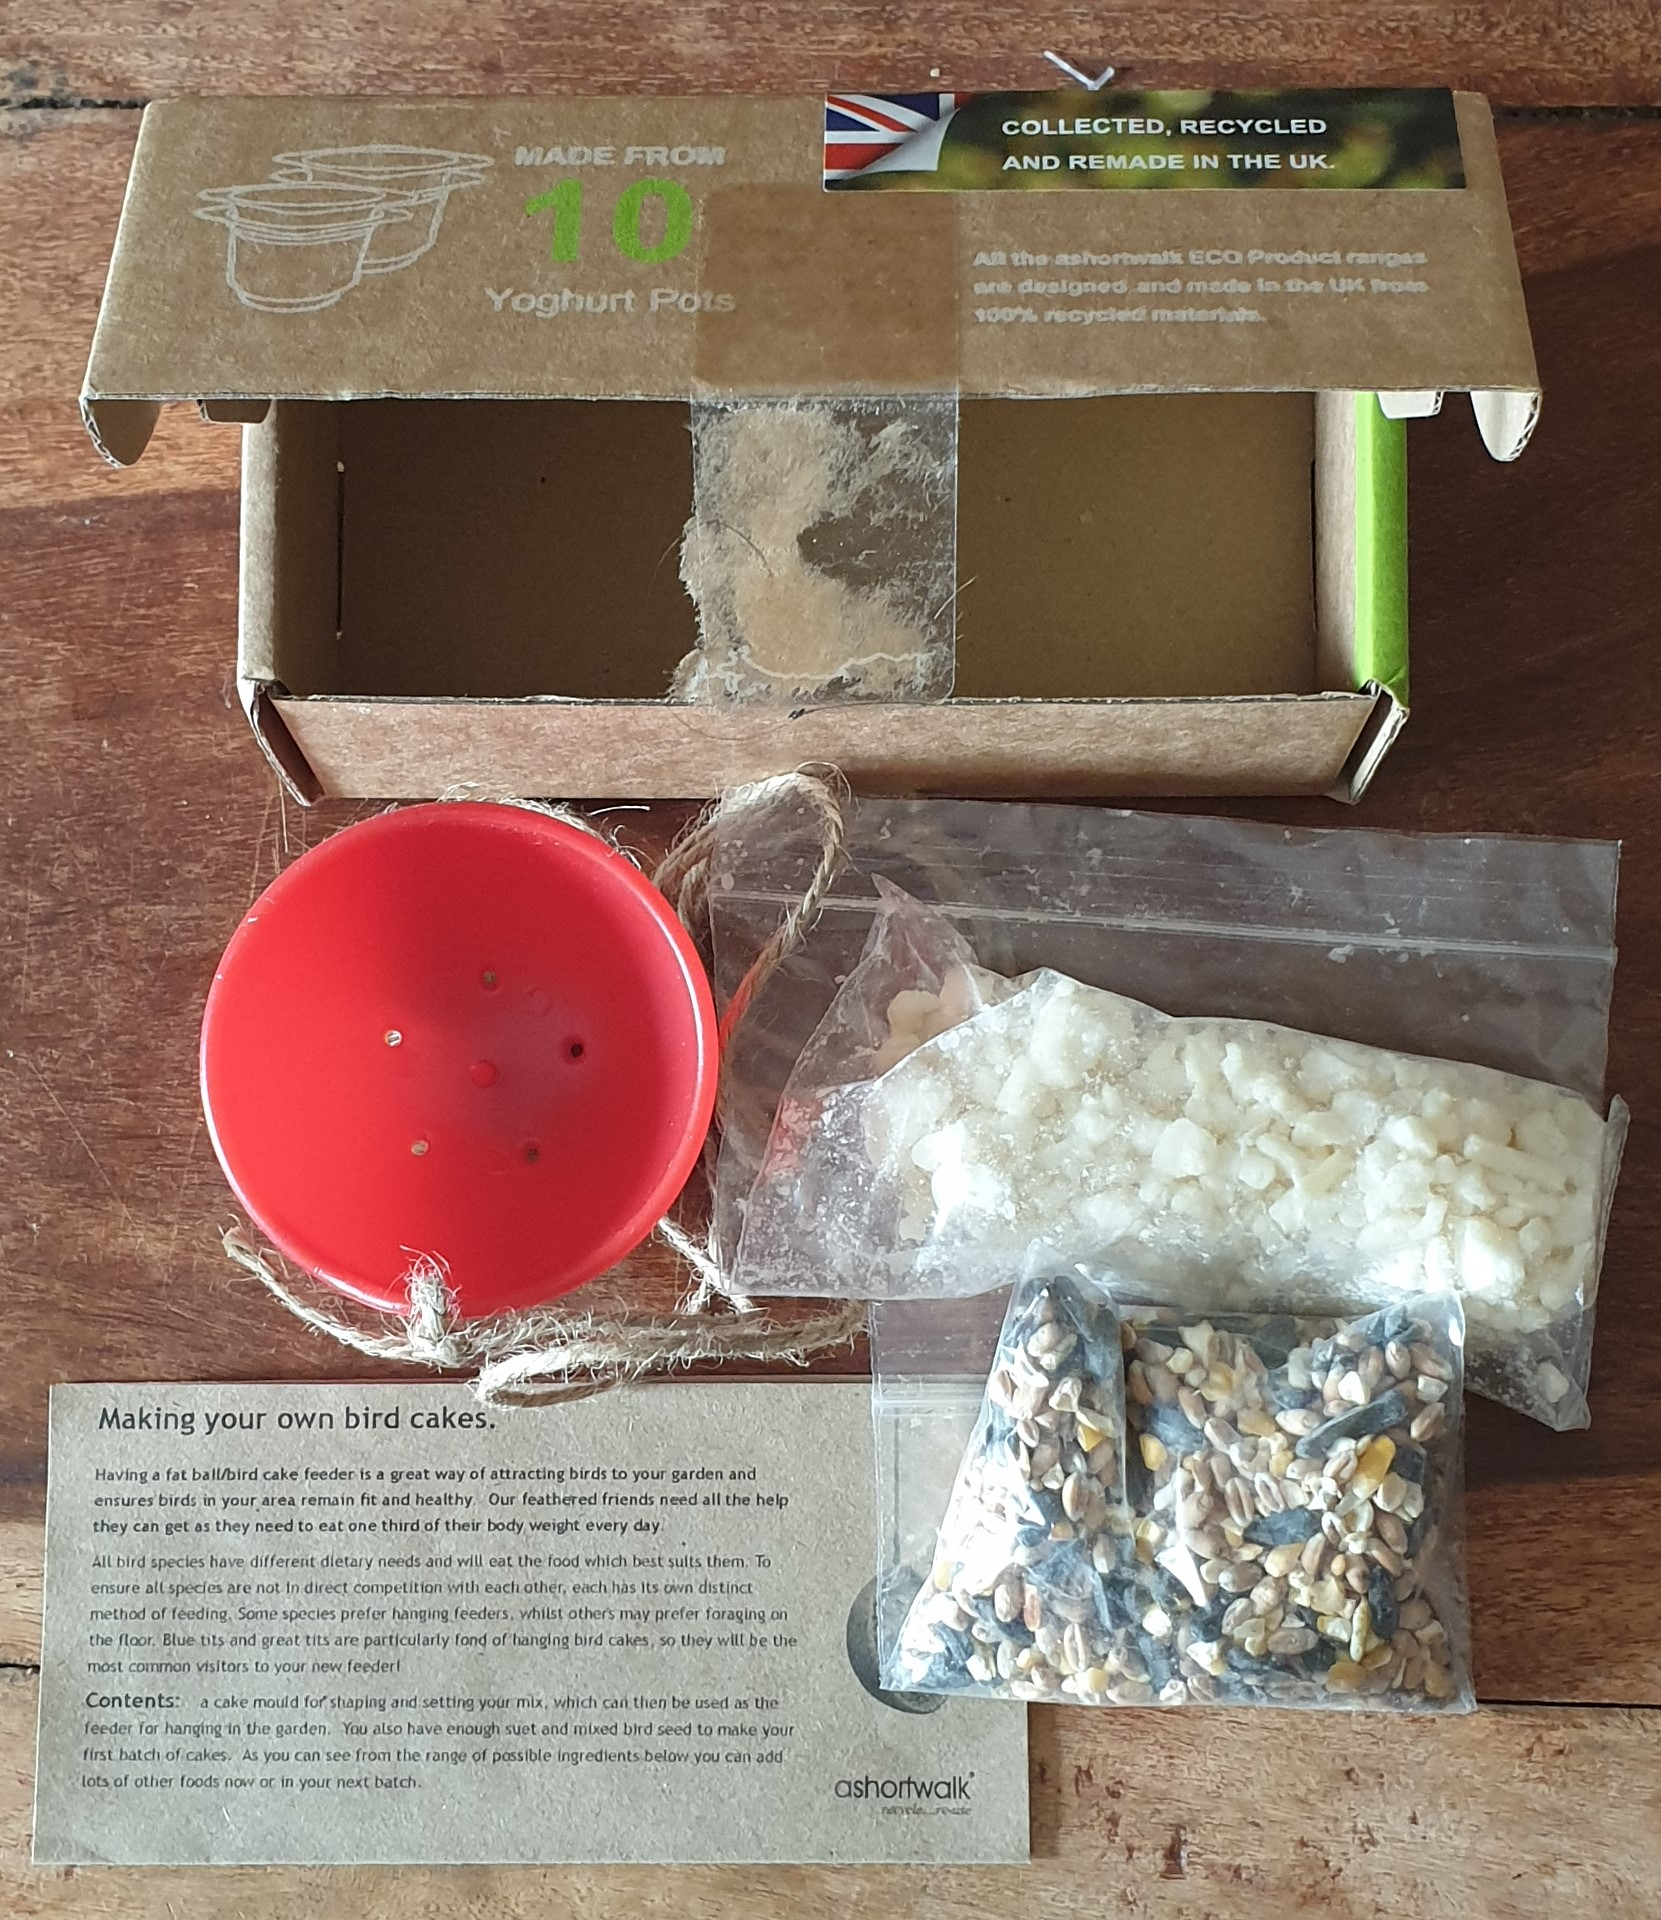 Picture of a birdfeeder kit made from recycled yoghurt pots